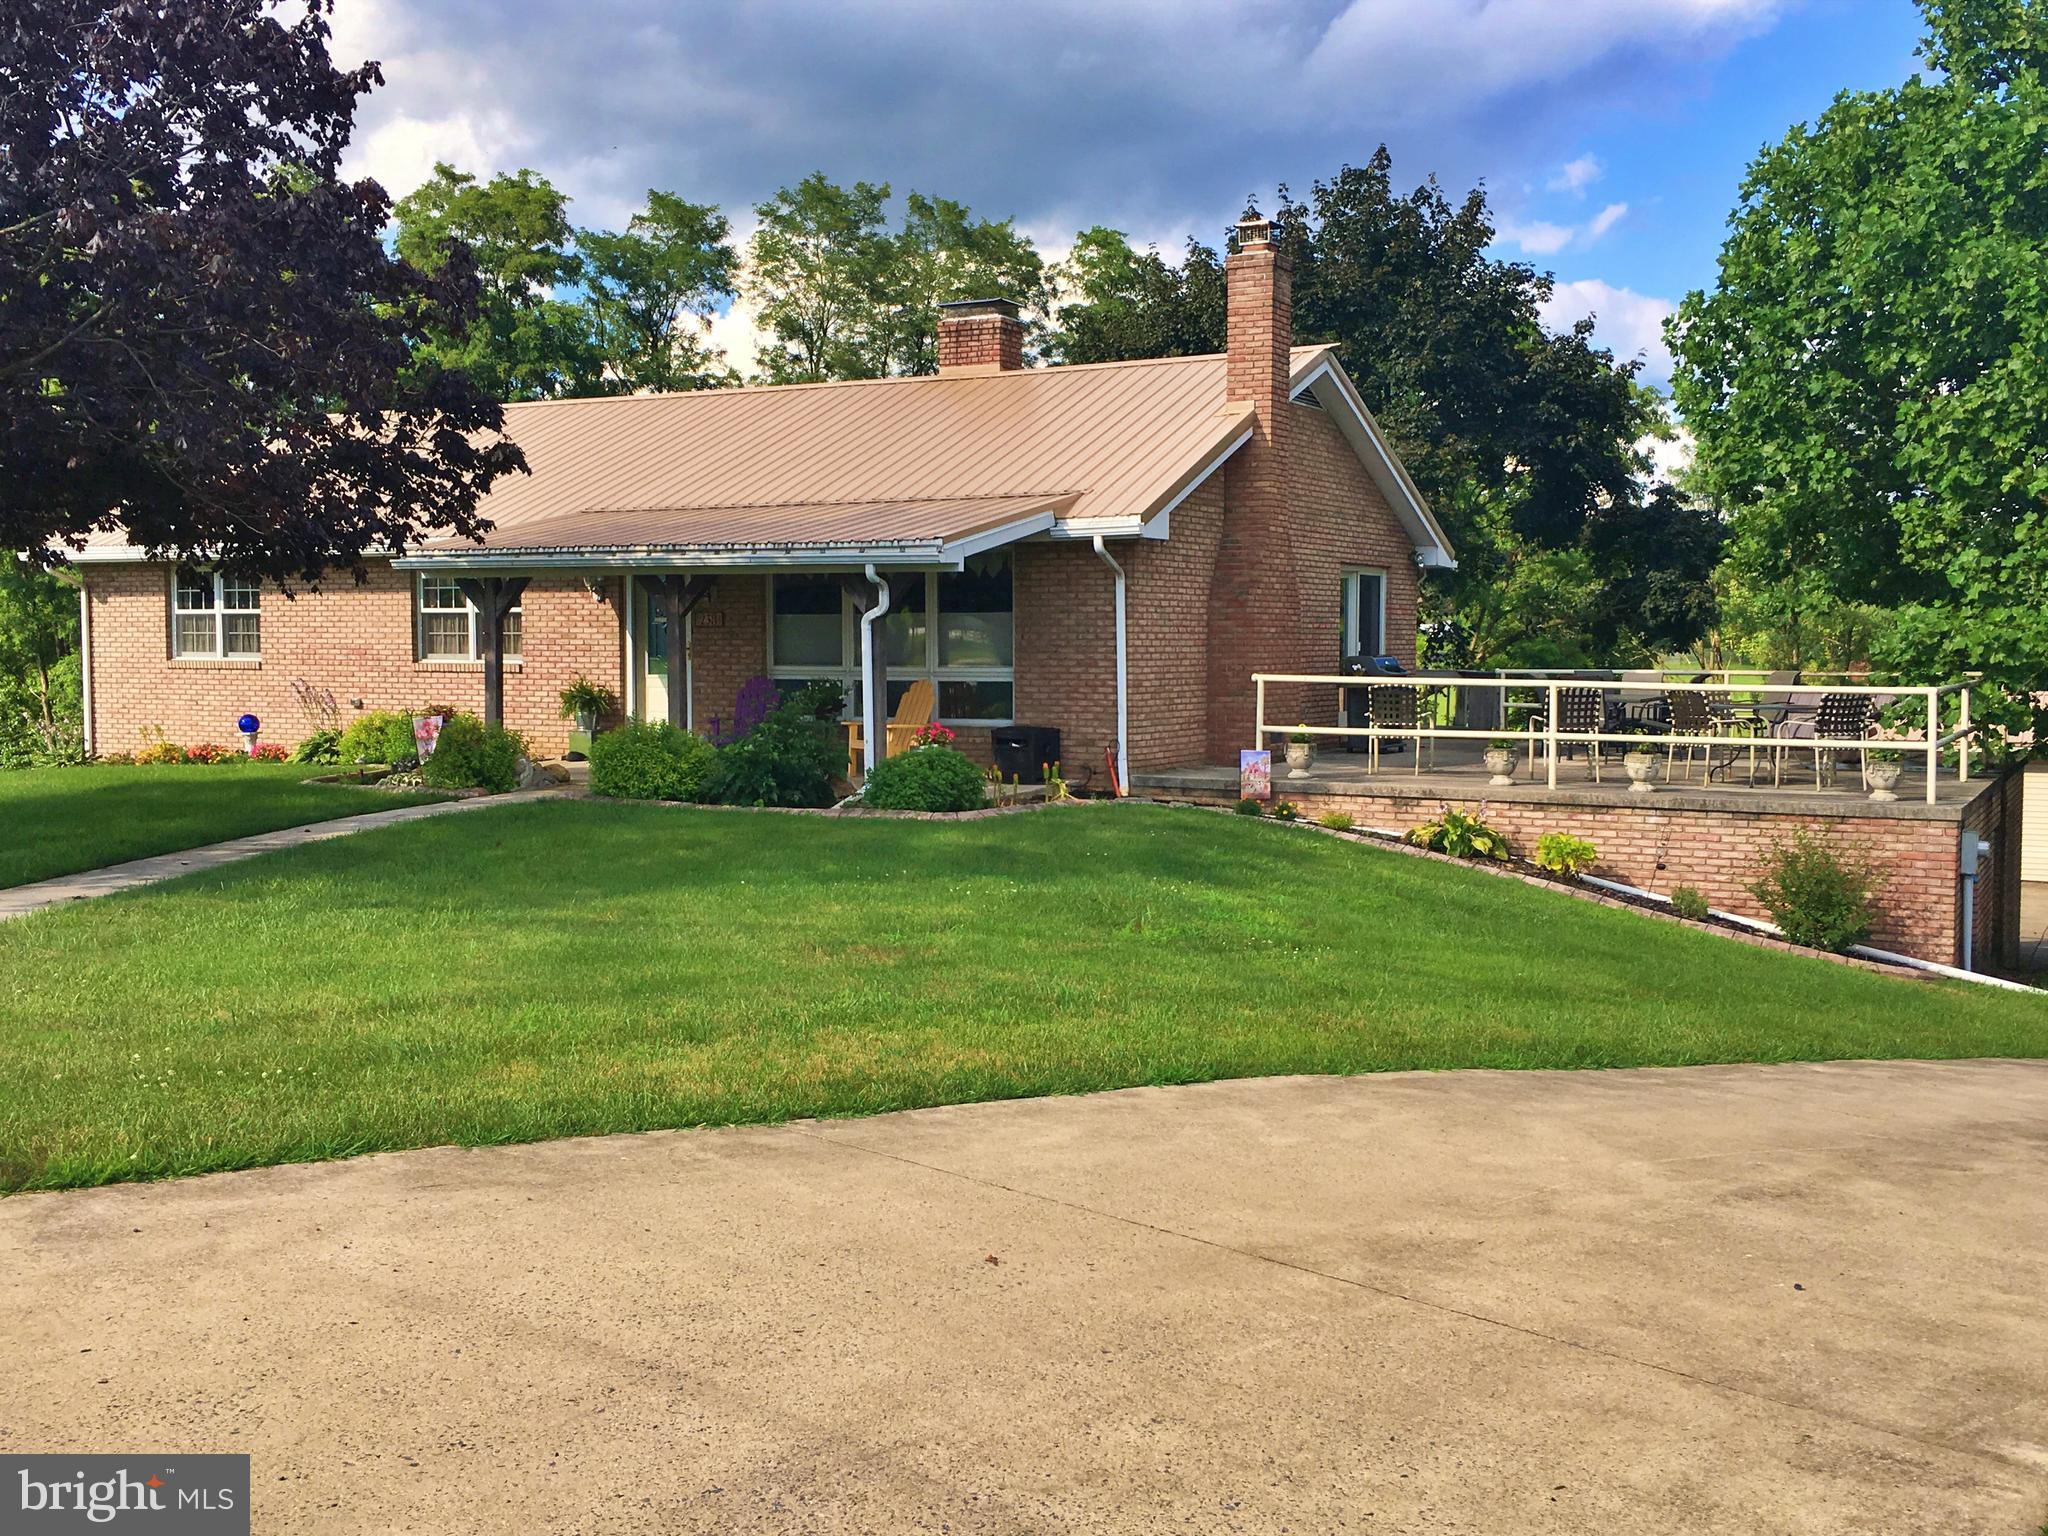 238 GRAVEL HILL ROAD, PALMYRA, PA 17078